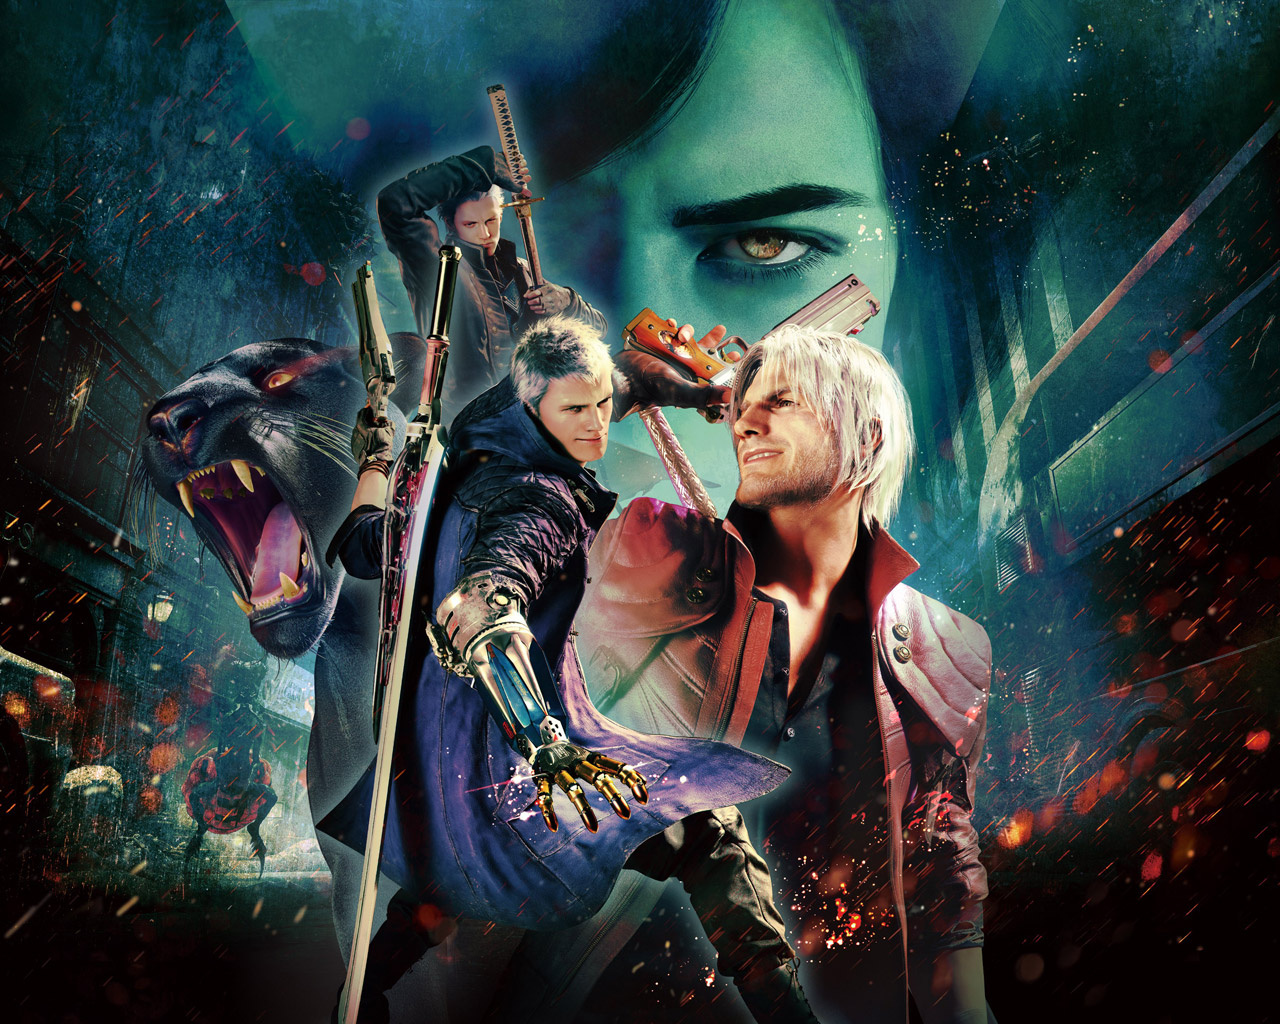 Devil May Cry 5 Wallpaper in 1280x1024